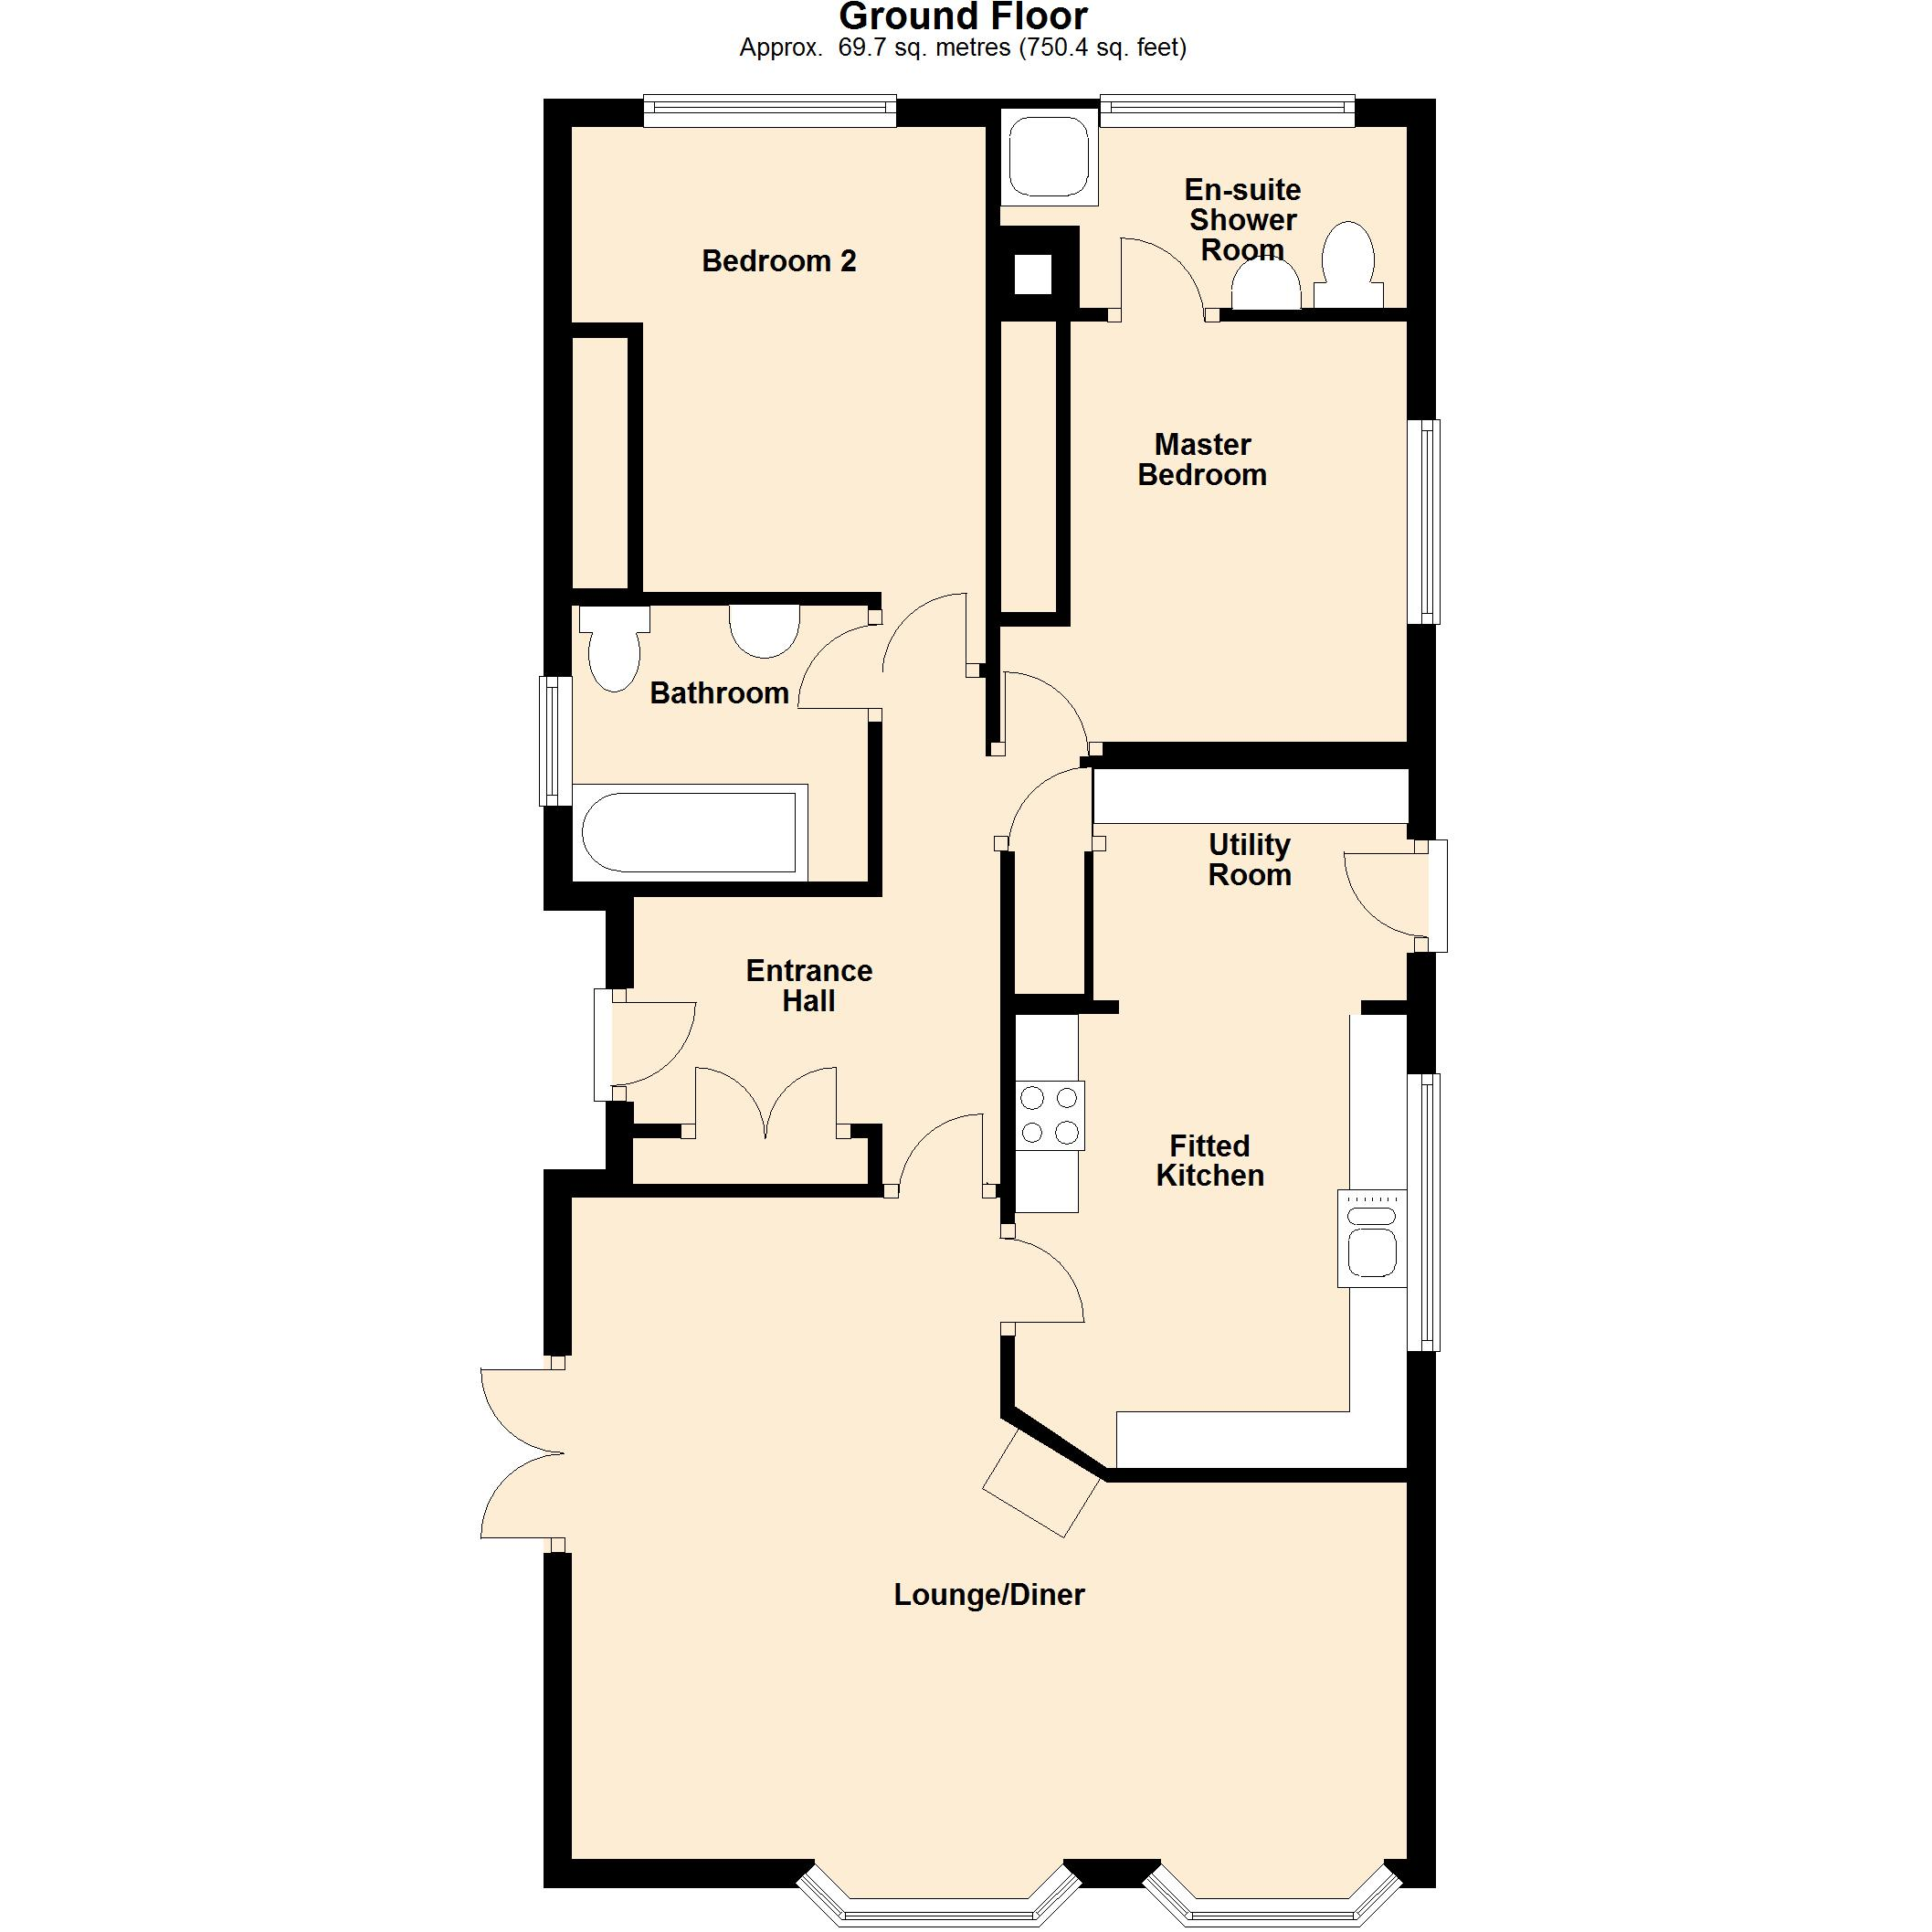 40x20 house plans house design plans for House plans floor plans